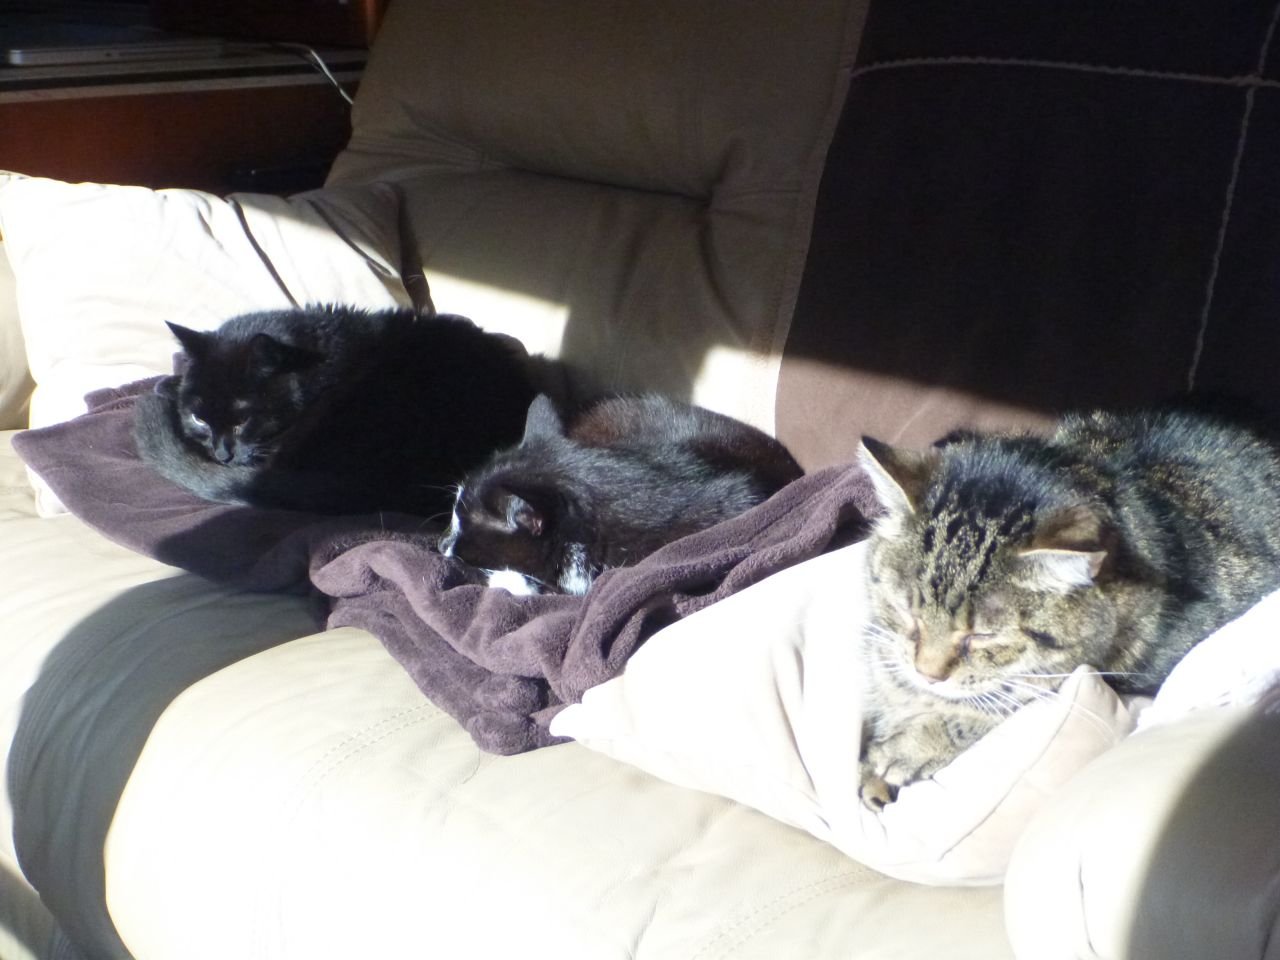 Angel, BK and Whisper Sharing The Couch While Napping